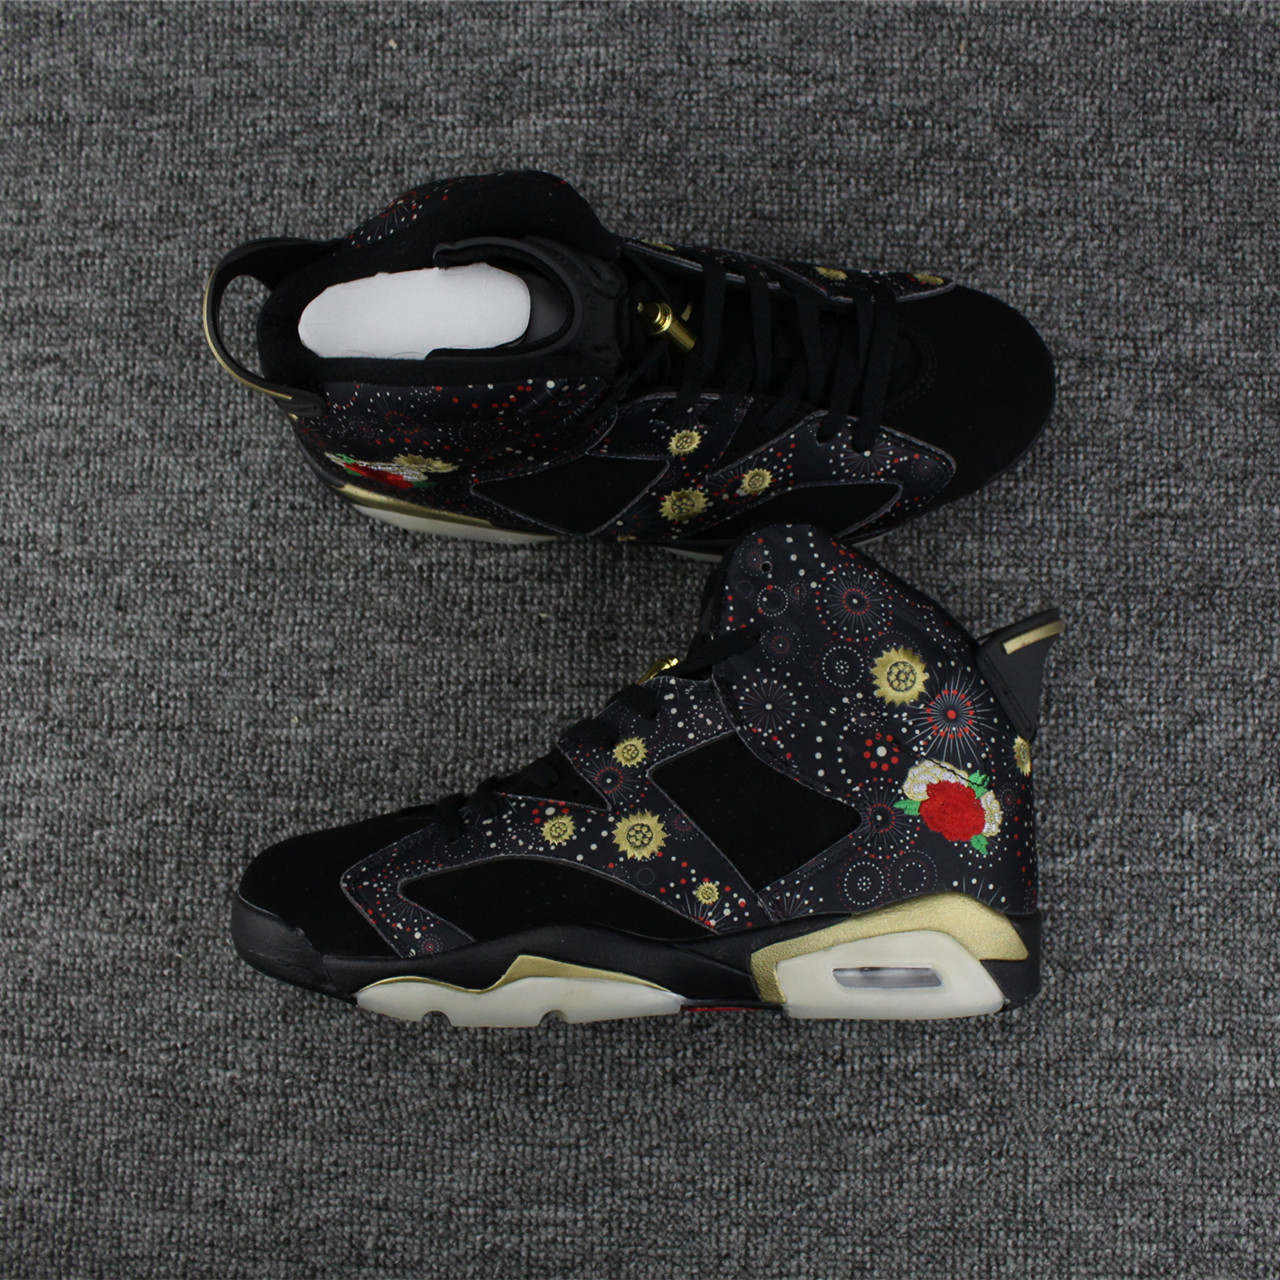 2017 New Jordan 6 Chinese New Year Black Print Shoes